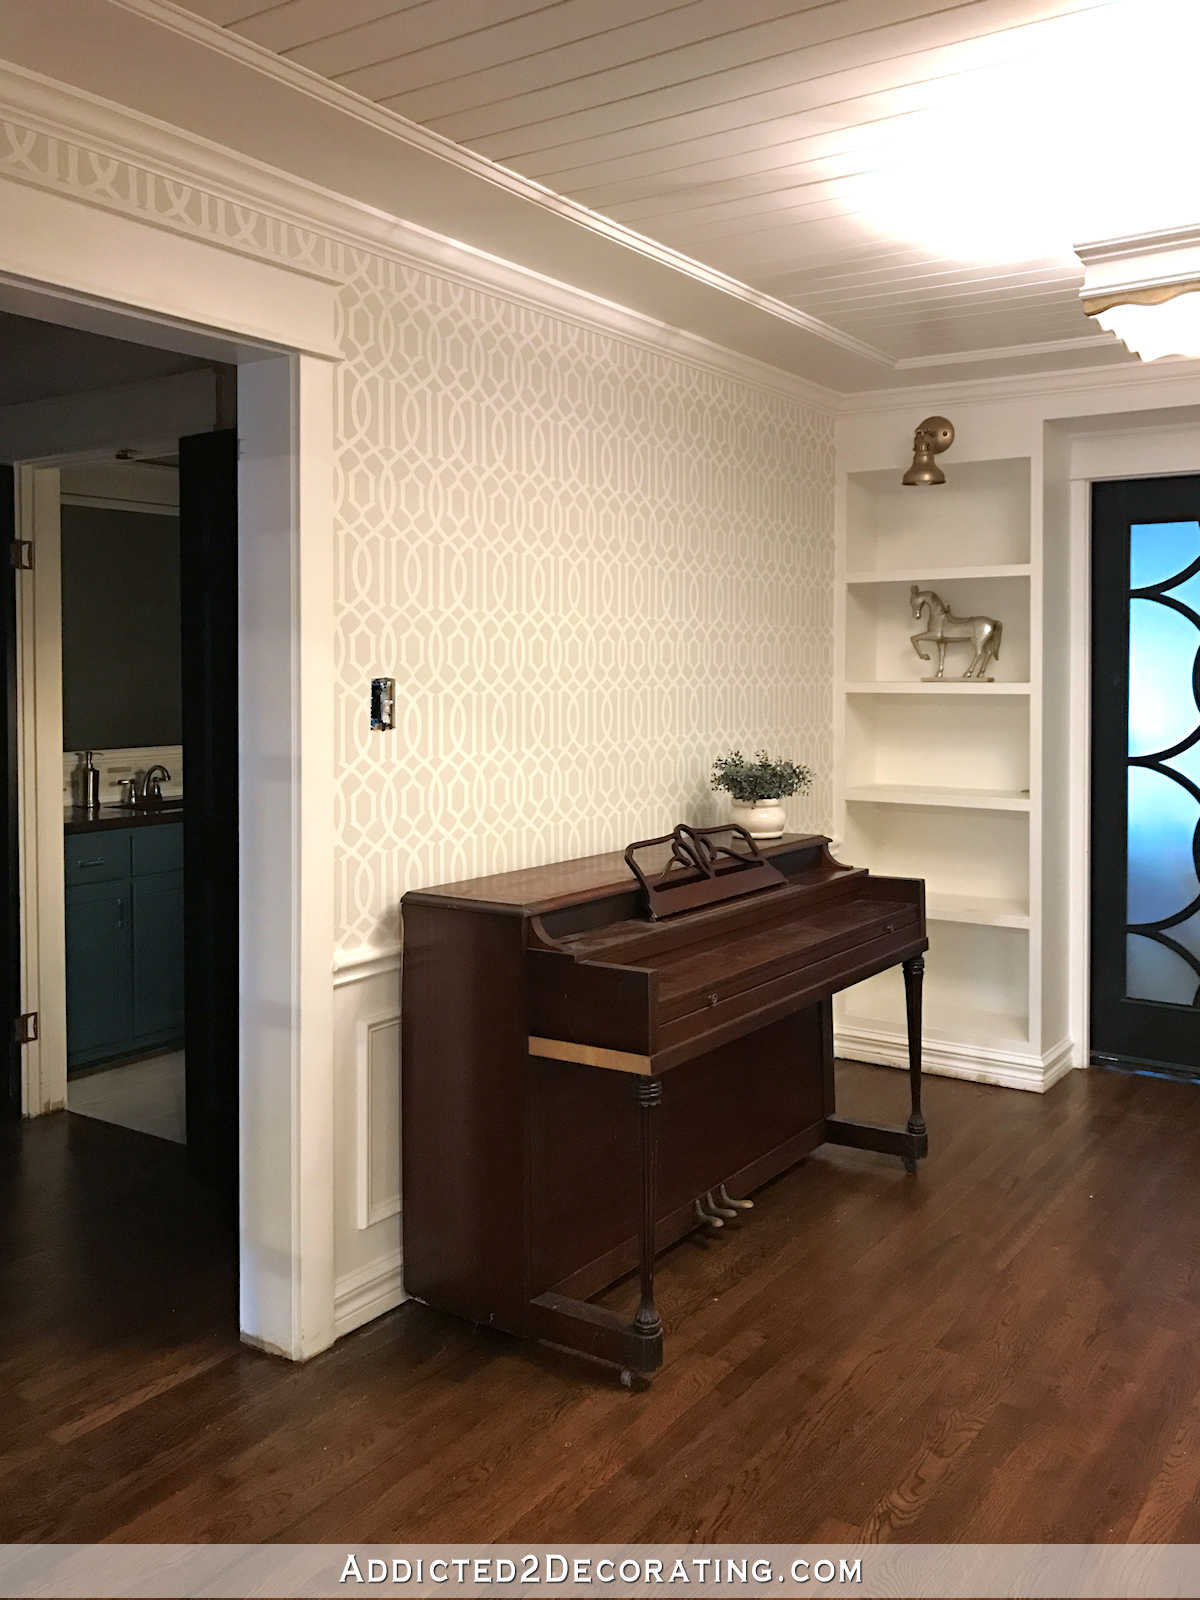 stenciled trellis design on walls in music room - 9